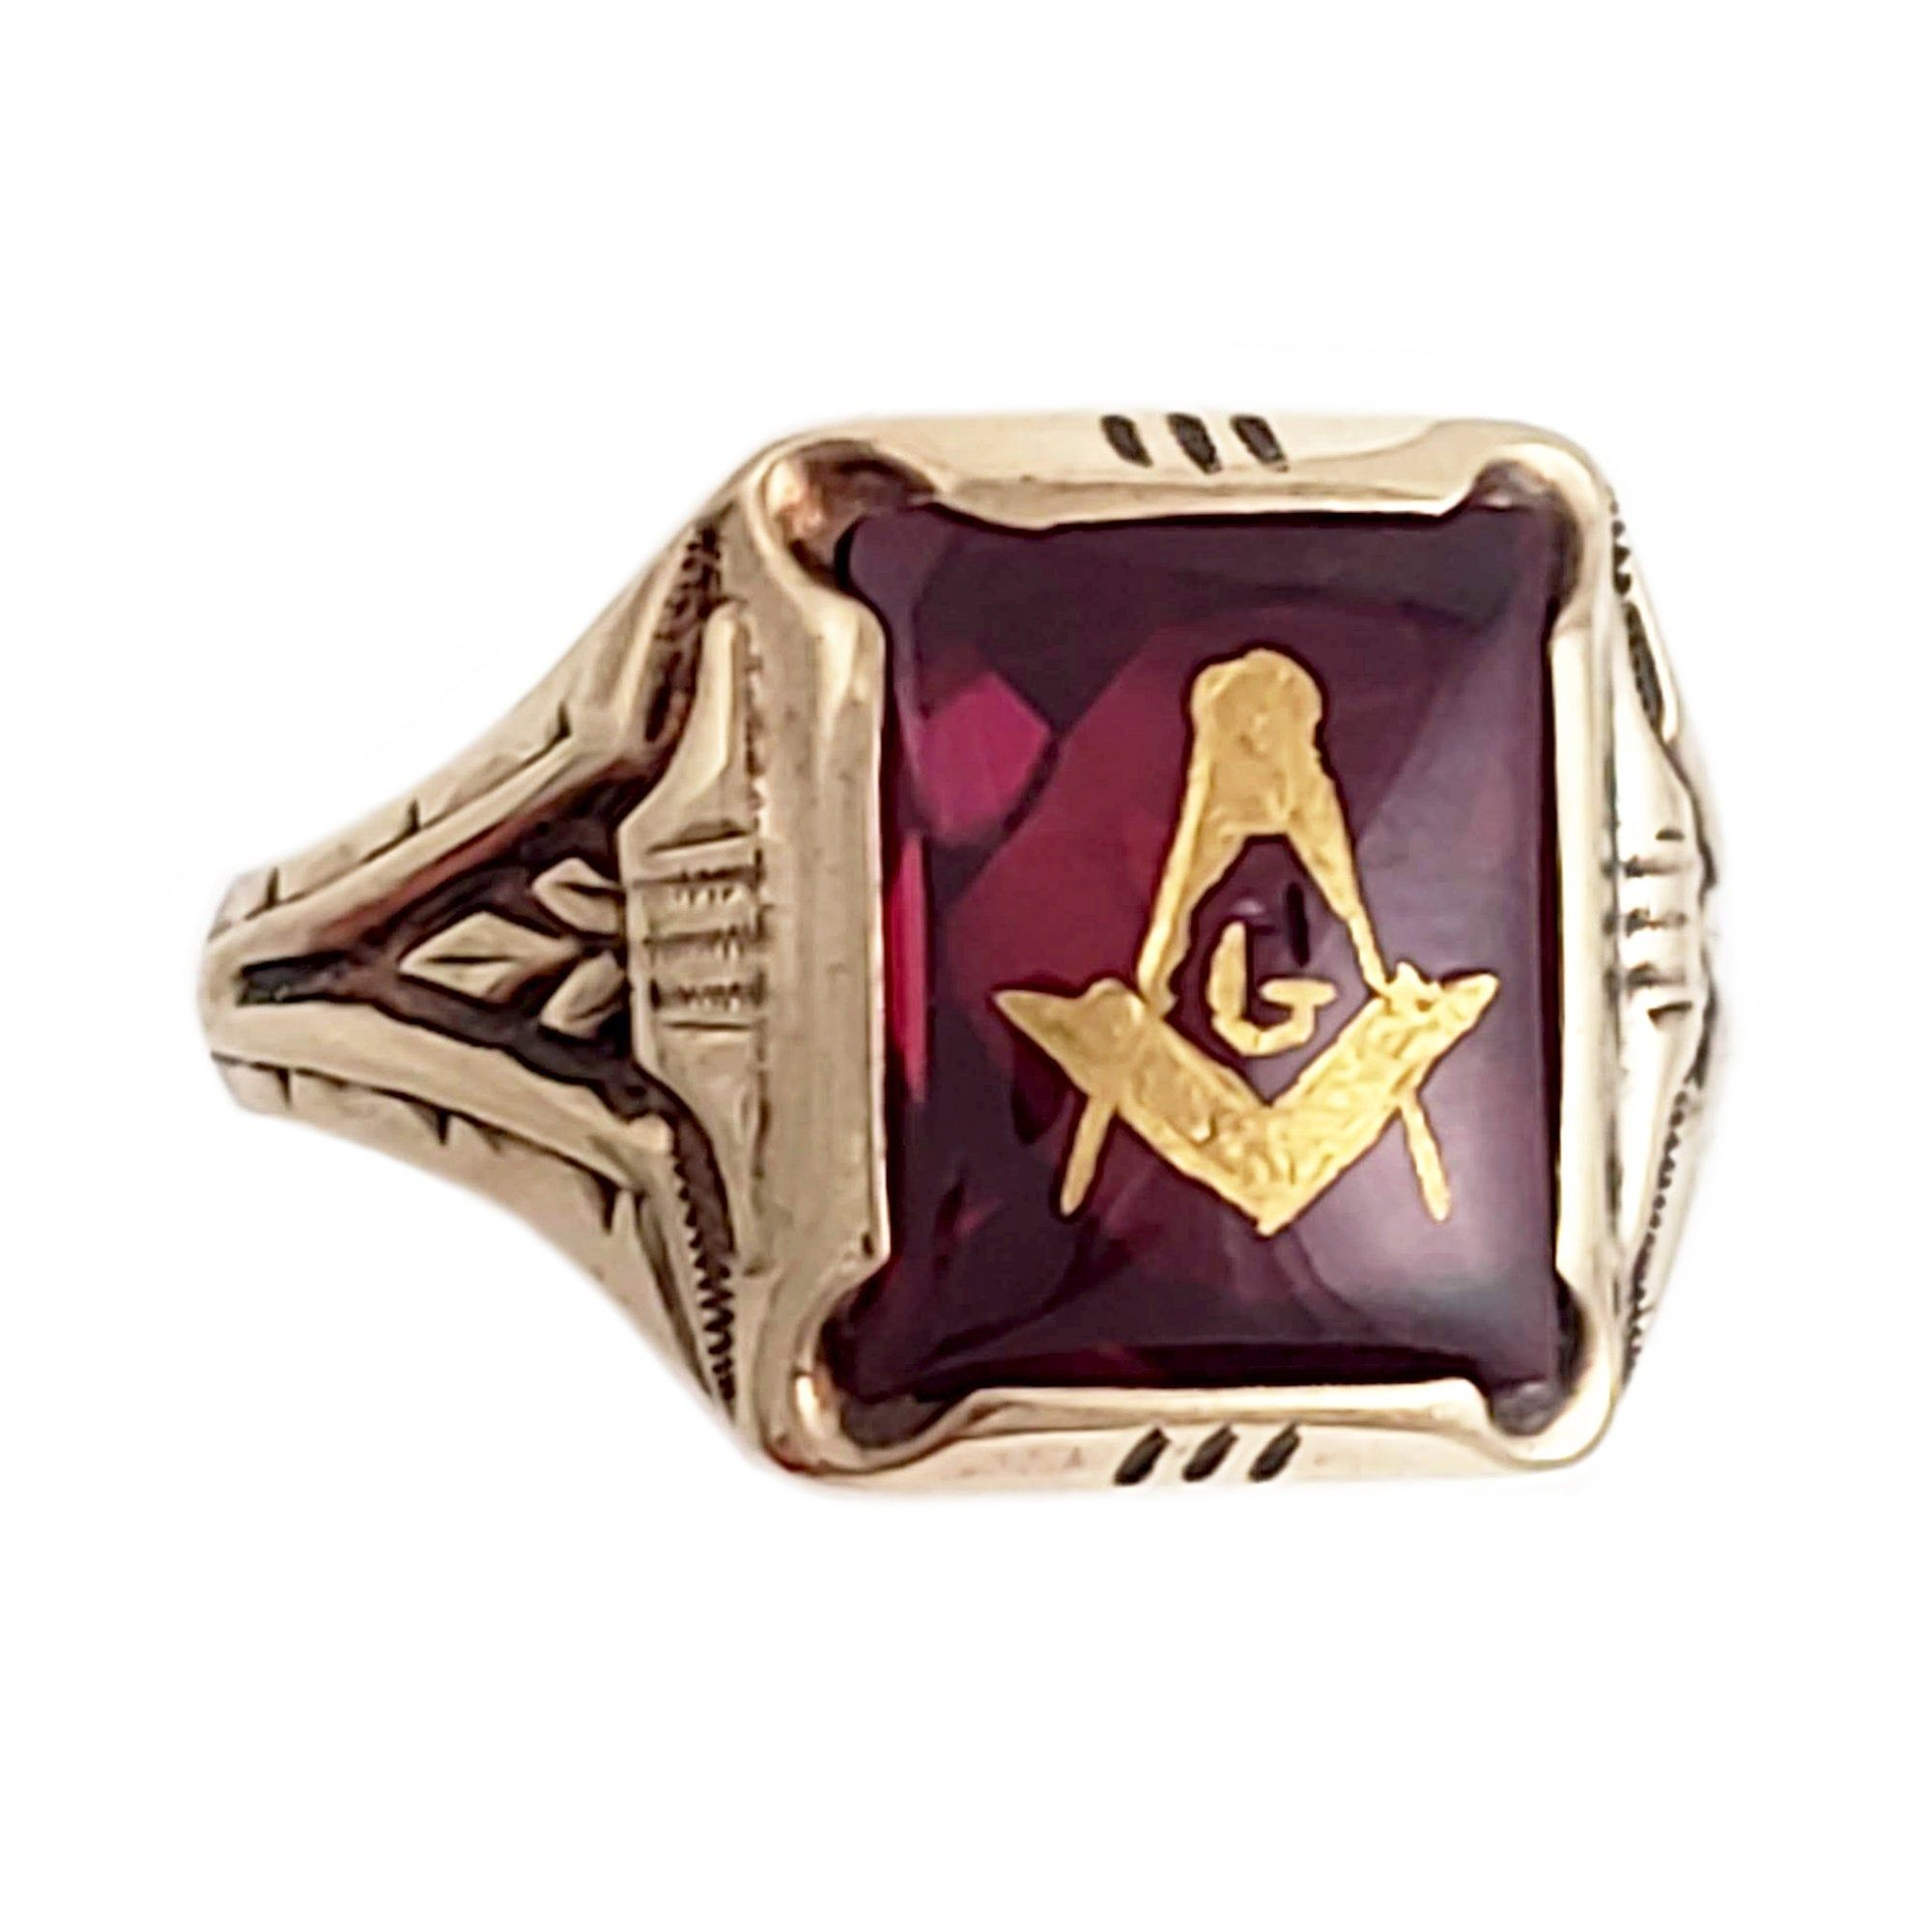 Vintage O B 10k Gold Masonic Ring With Synthetic Ruby Size 10 25 Masonic Ring Synthetic Ruby 10k Gold